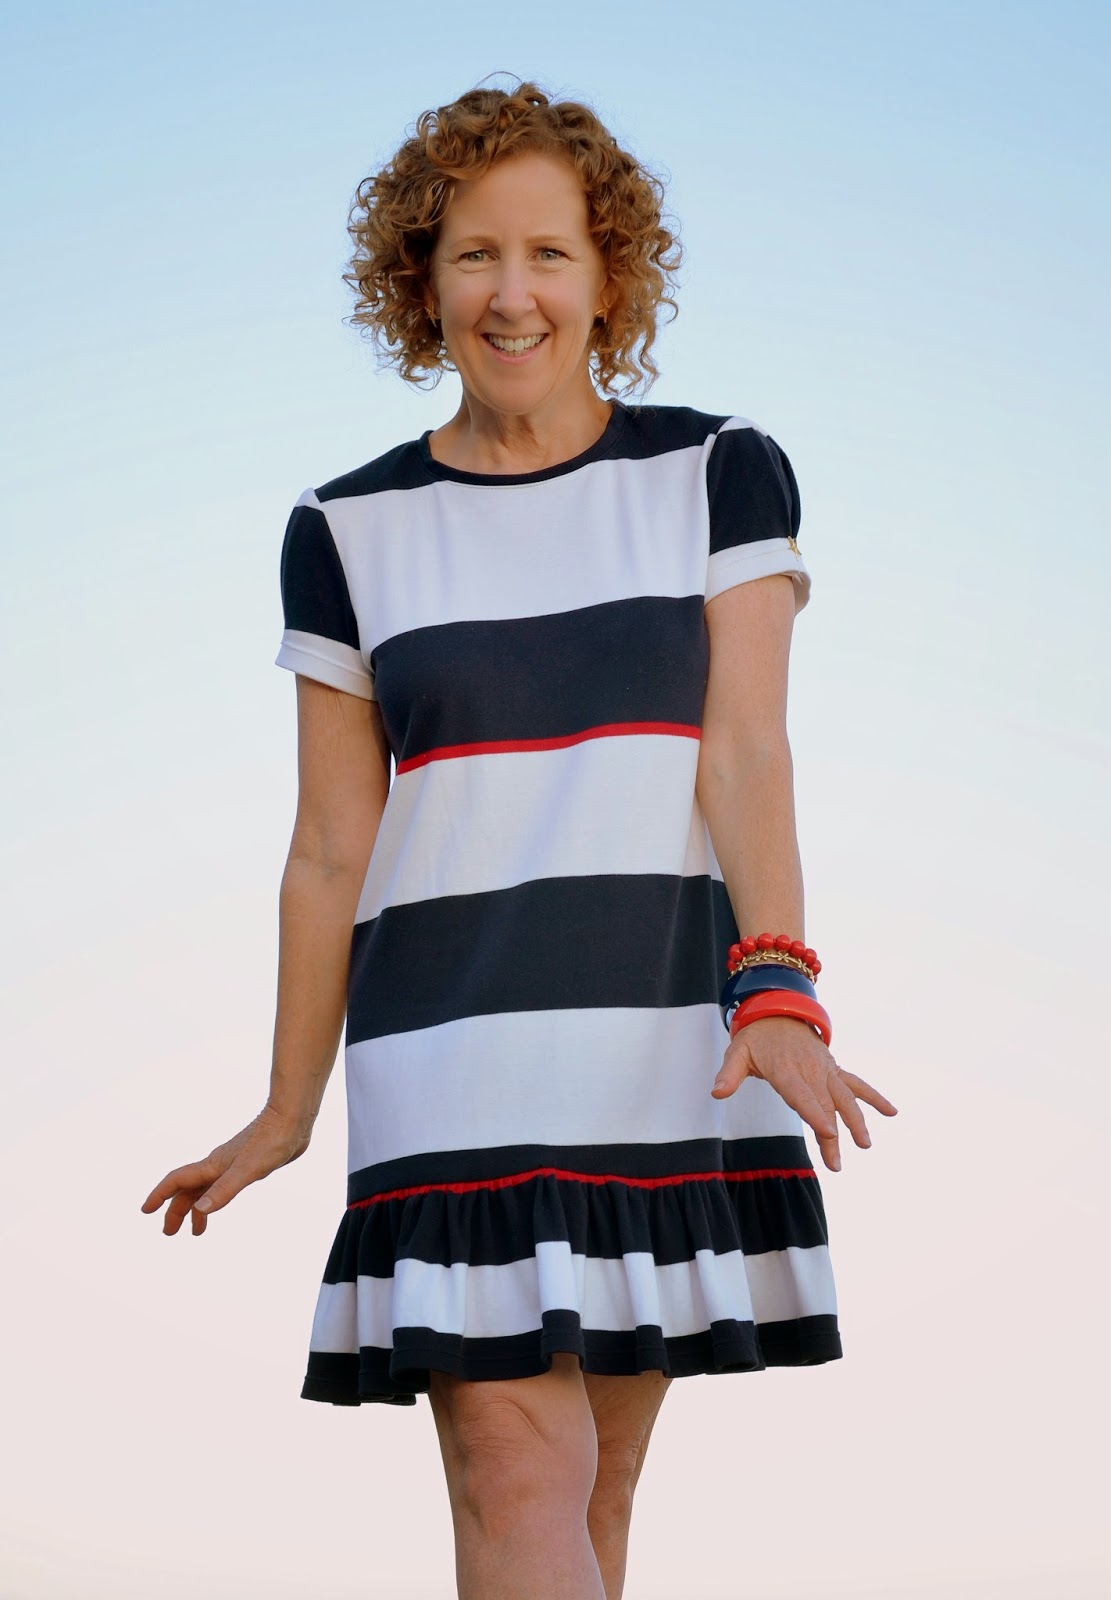 Summer Sundress Sew-a-long, Stripes